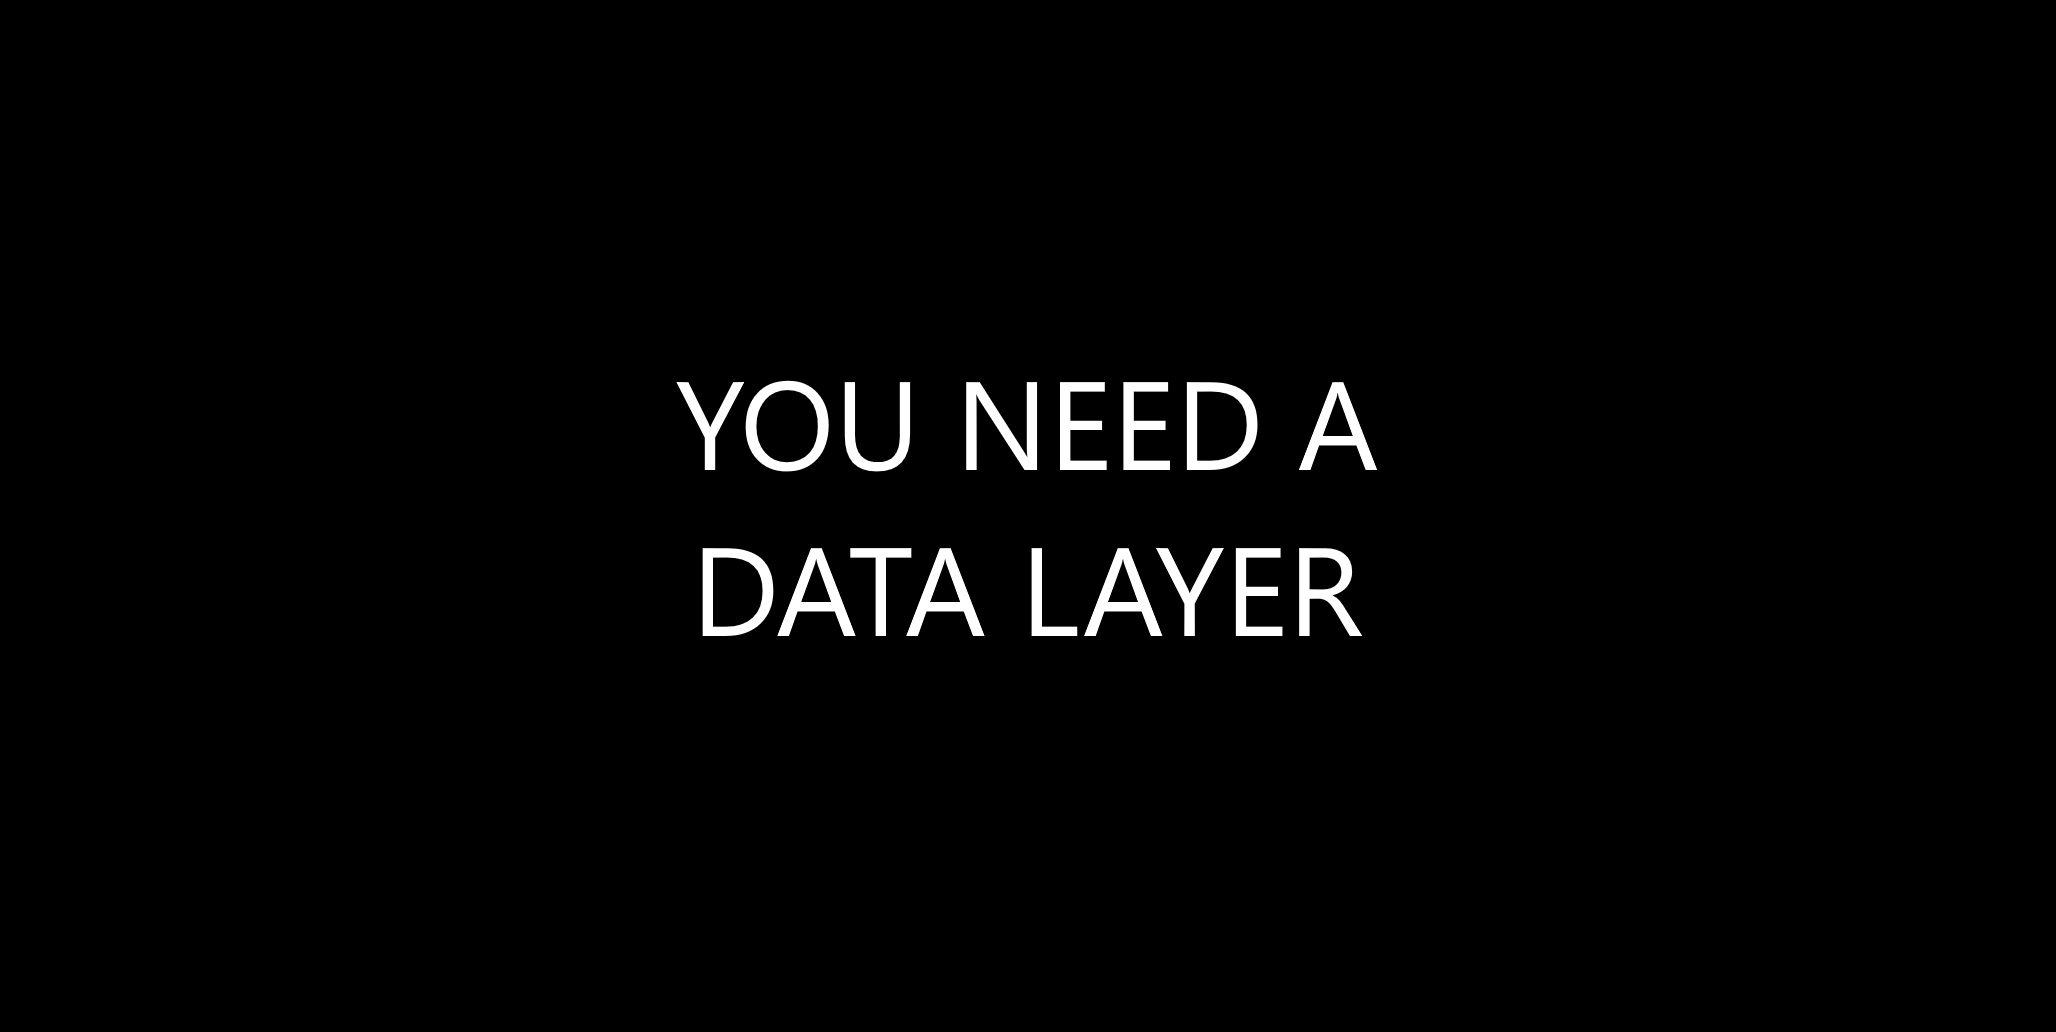 You Need a Data Layer